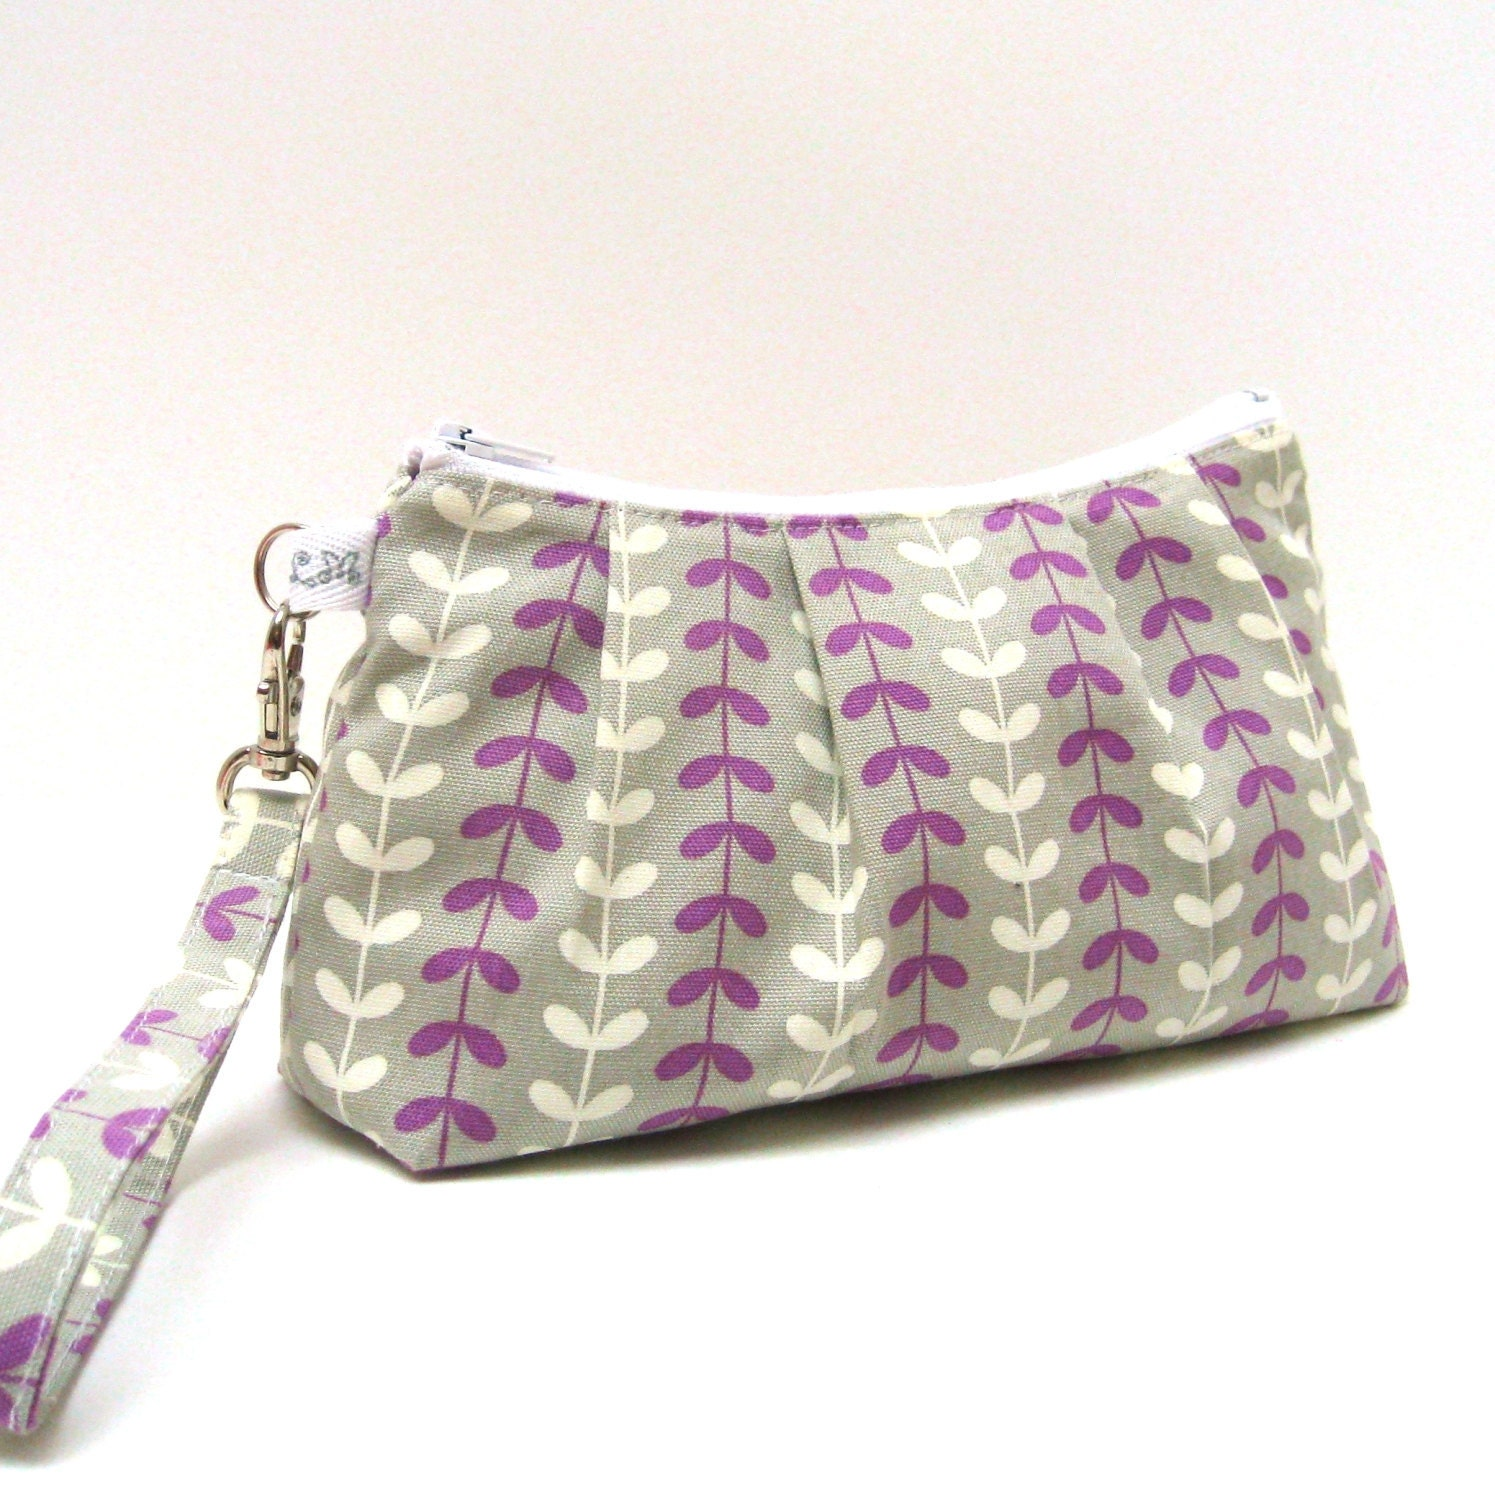 Rectangular Wristlet Clutch Purse Purple and White Vines on Grey - LMcreation